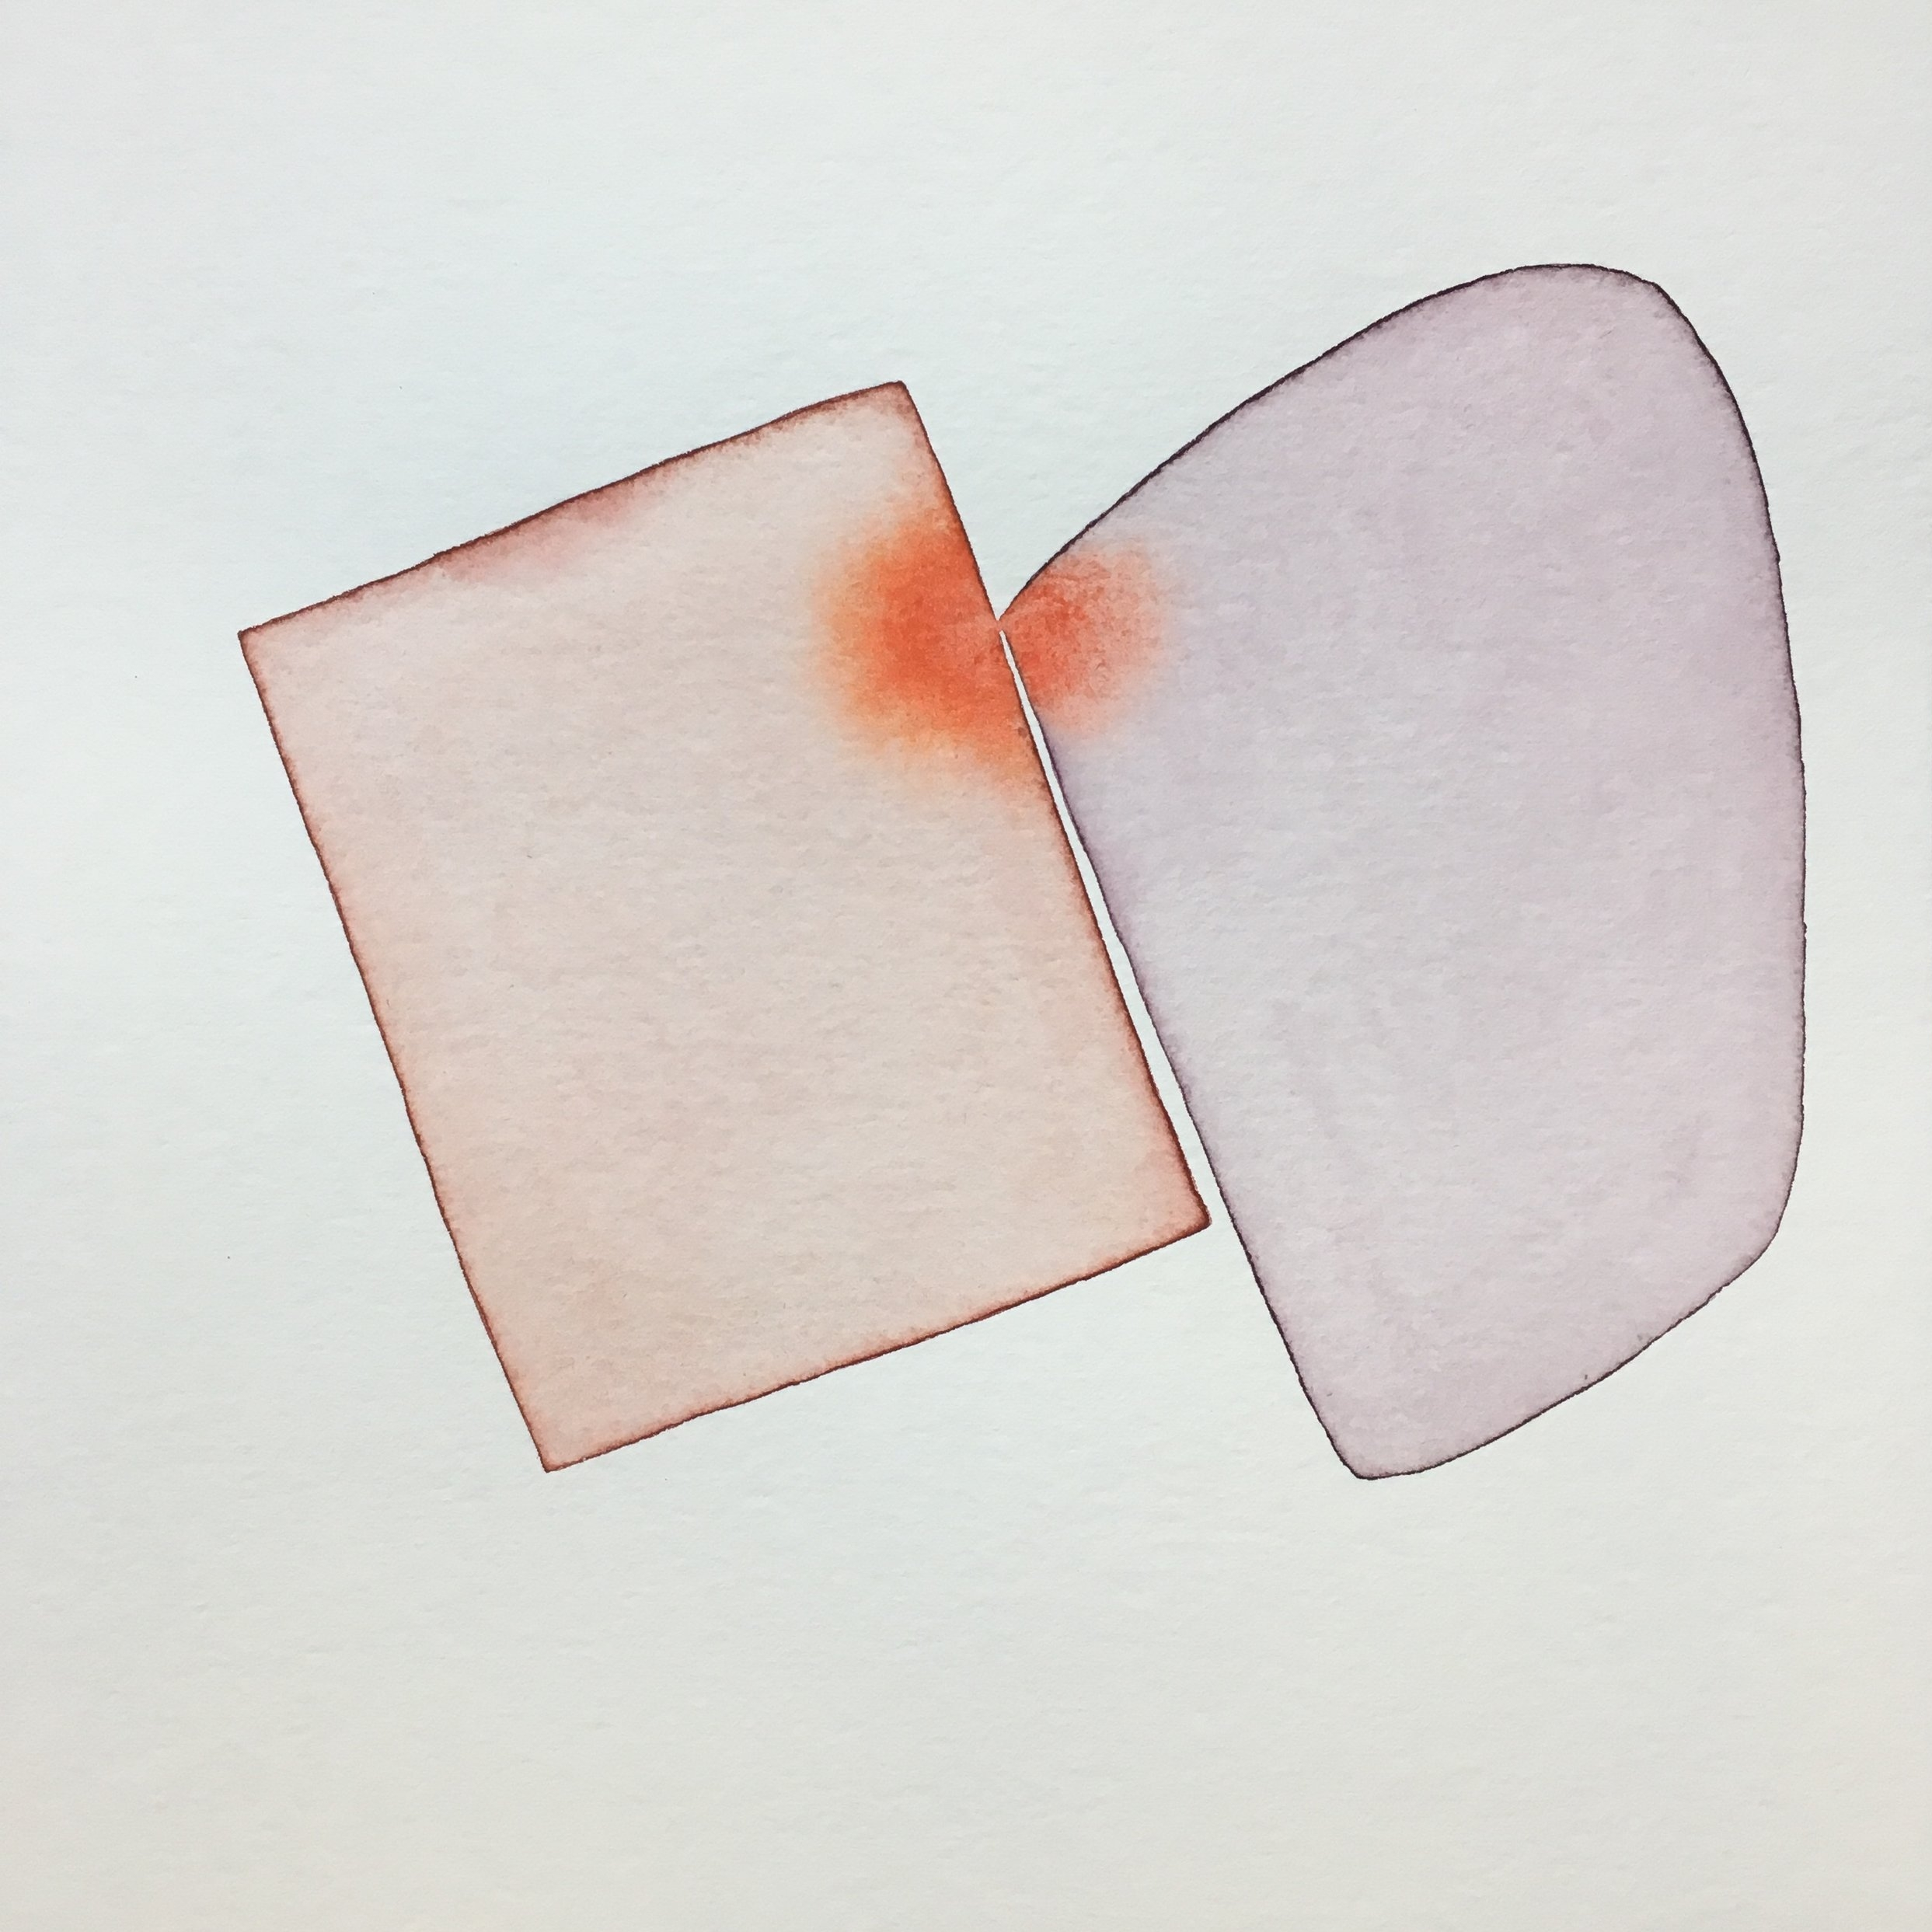 Geome series, watercolour, 30cm x 30cm, 2018.